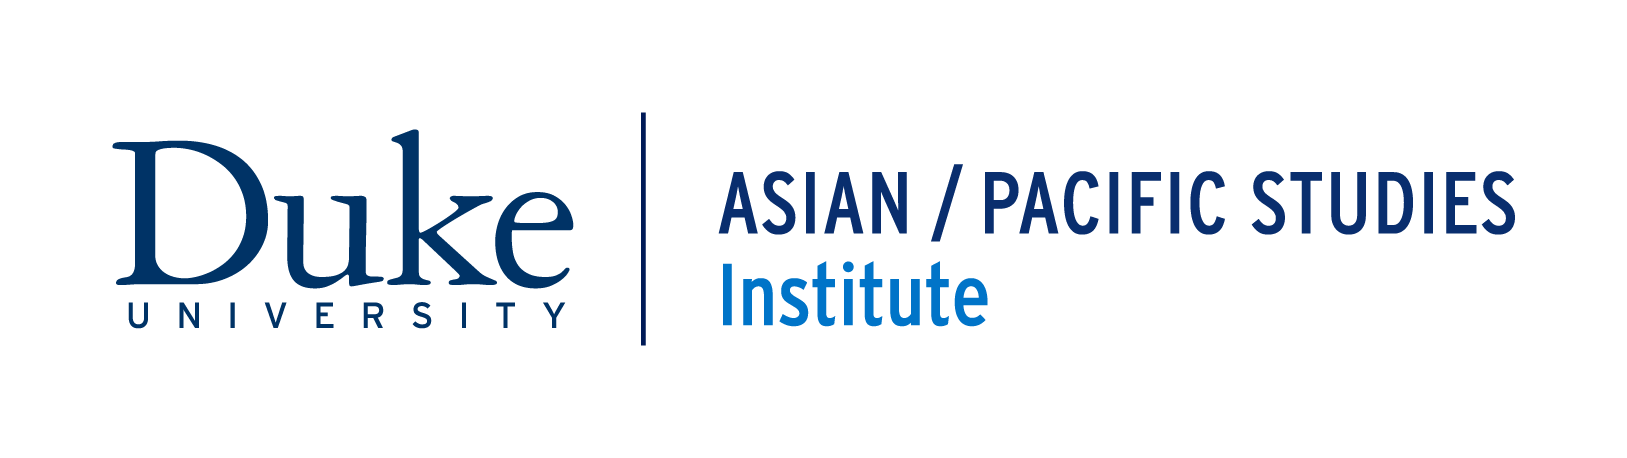 Duke University Asian Pacific Institute